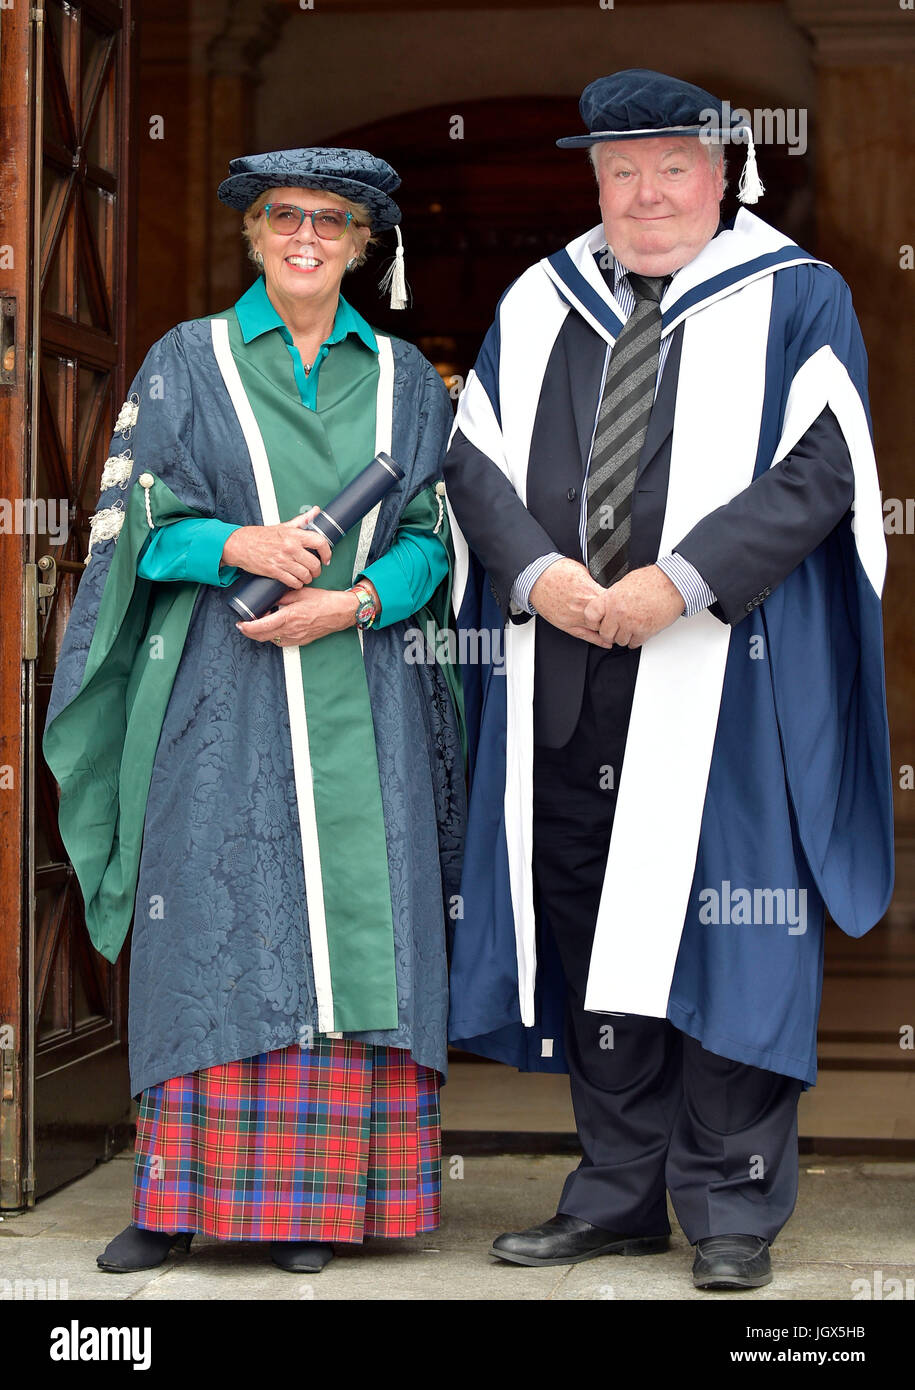 Edinburgh, UK. 11th Jul, 2017. Bake-Off judge installed as university chancellor and Hollywood film producer awarded - Stock Image